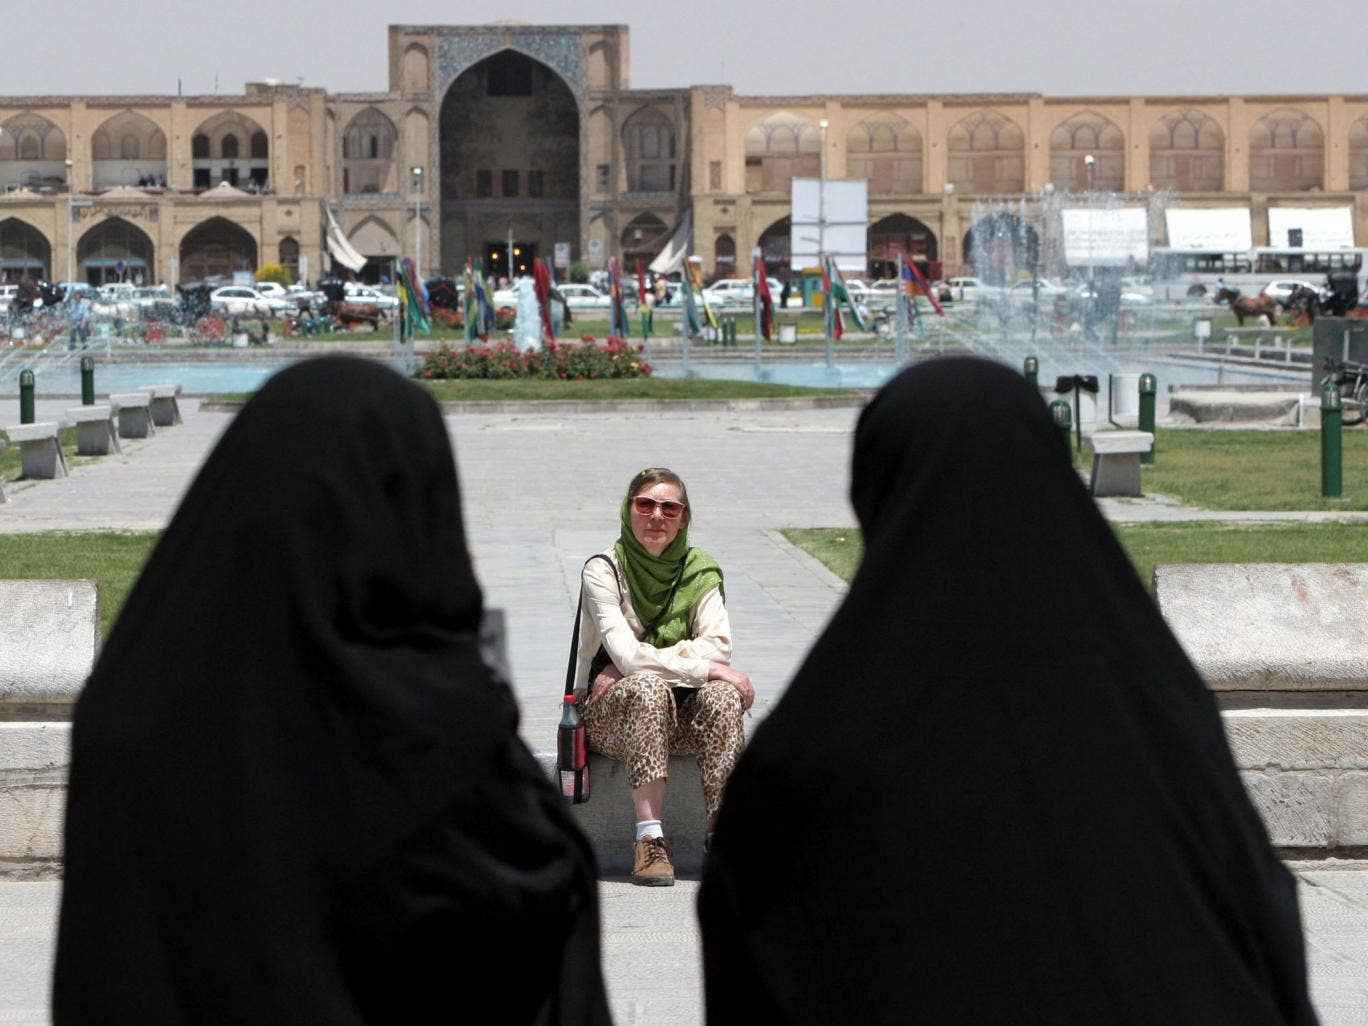 A tourist in Isfahan, some 400km south of the Iranian capital, Tehran.